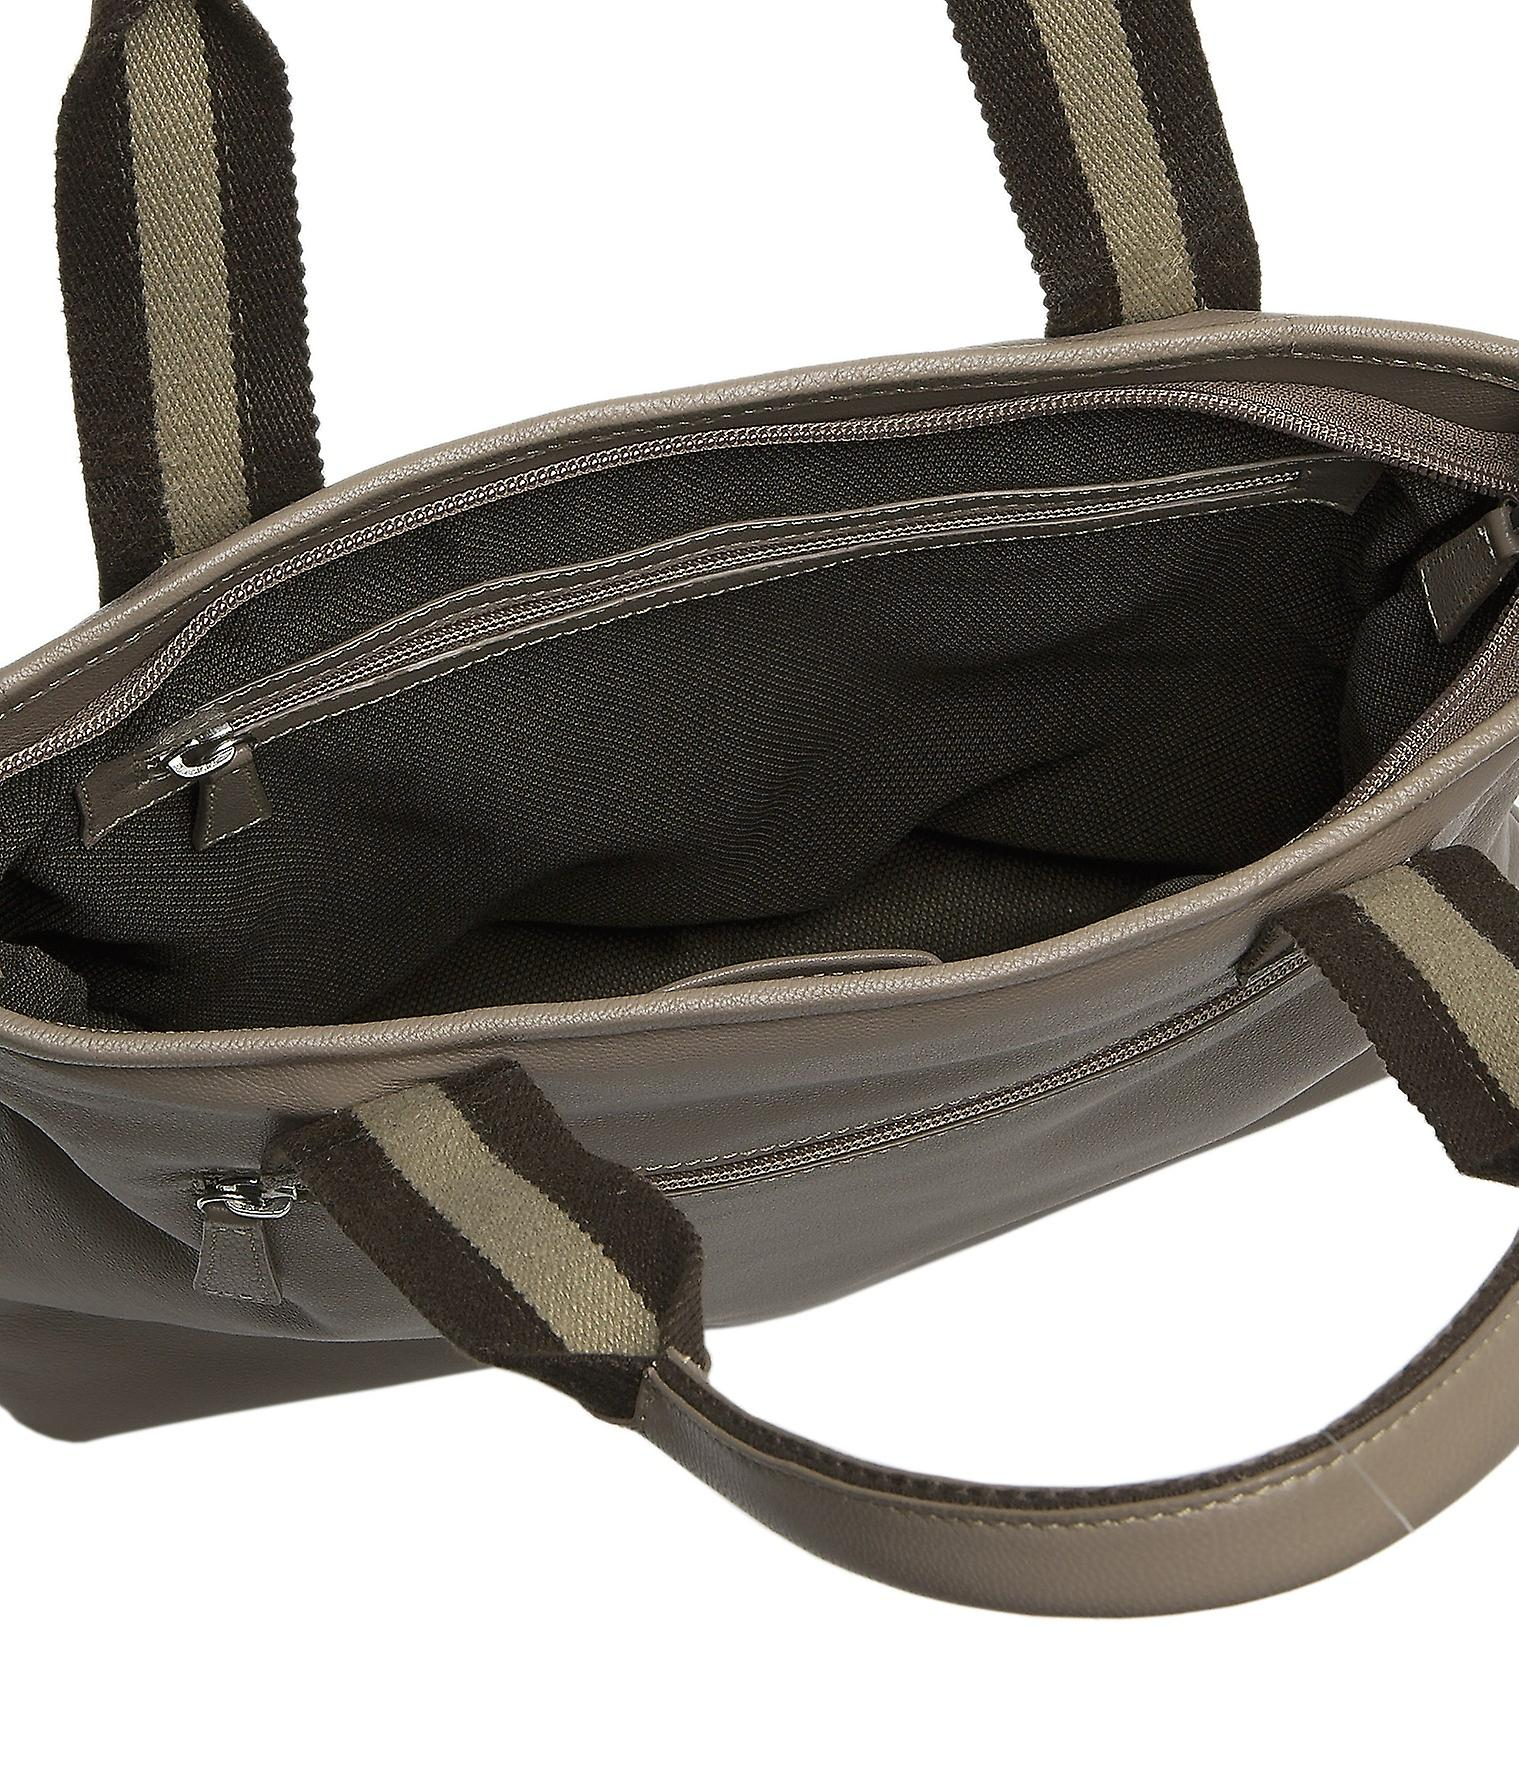 Burgmeister ladies bag T208-115B leather taupe